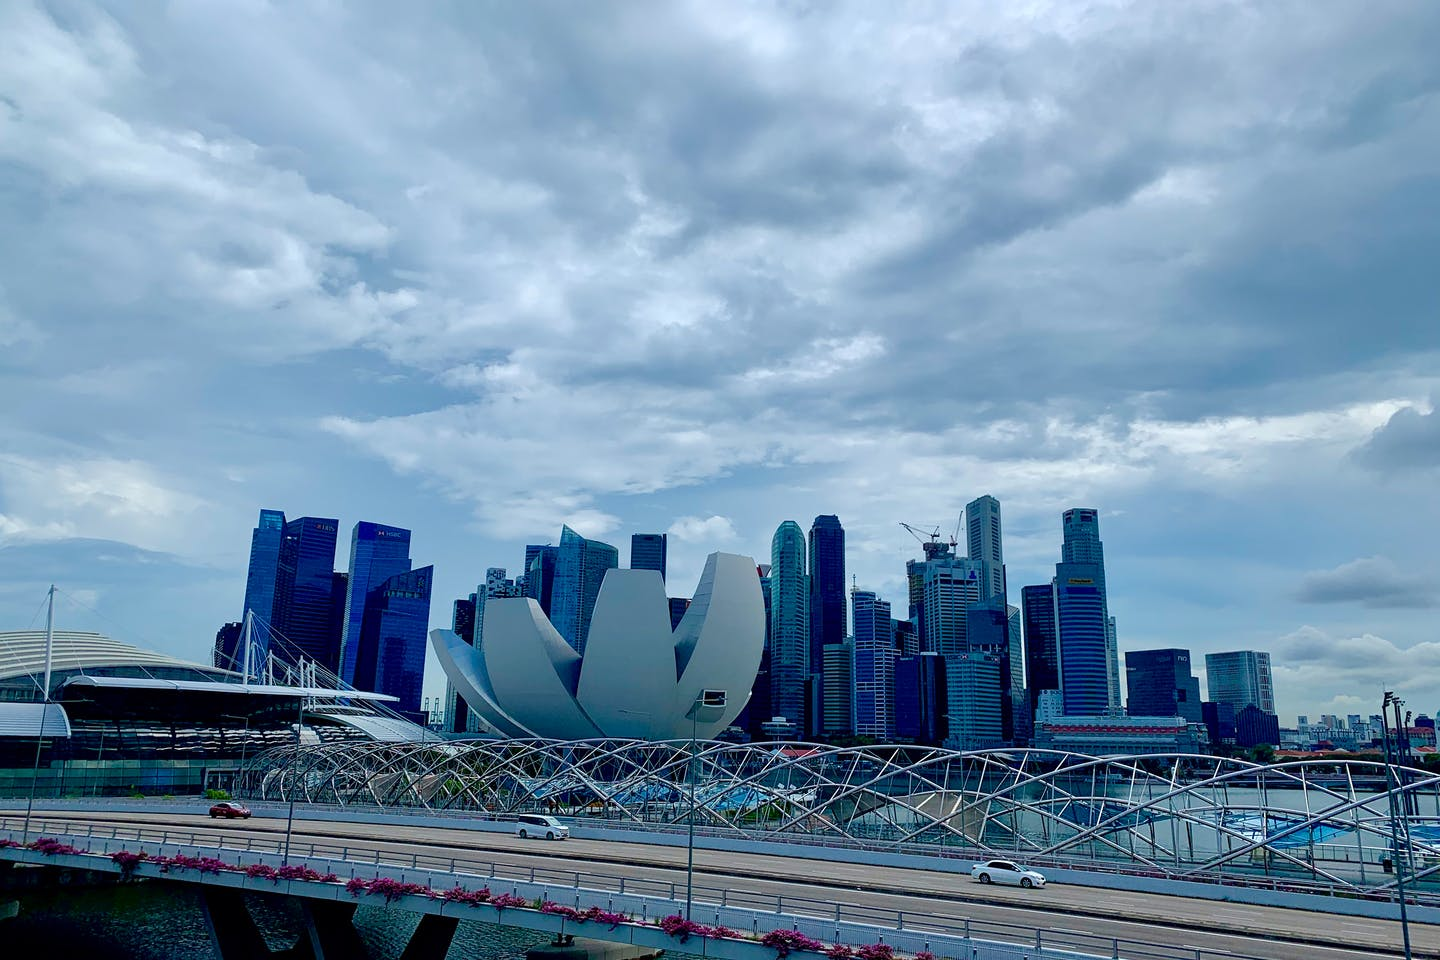 The Singapore skyline. Singapore is positioning itself as a regional hub for green finance as Southeast Asia looks to infrastructure to revive ailing economies.